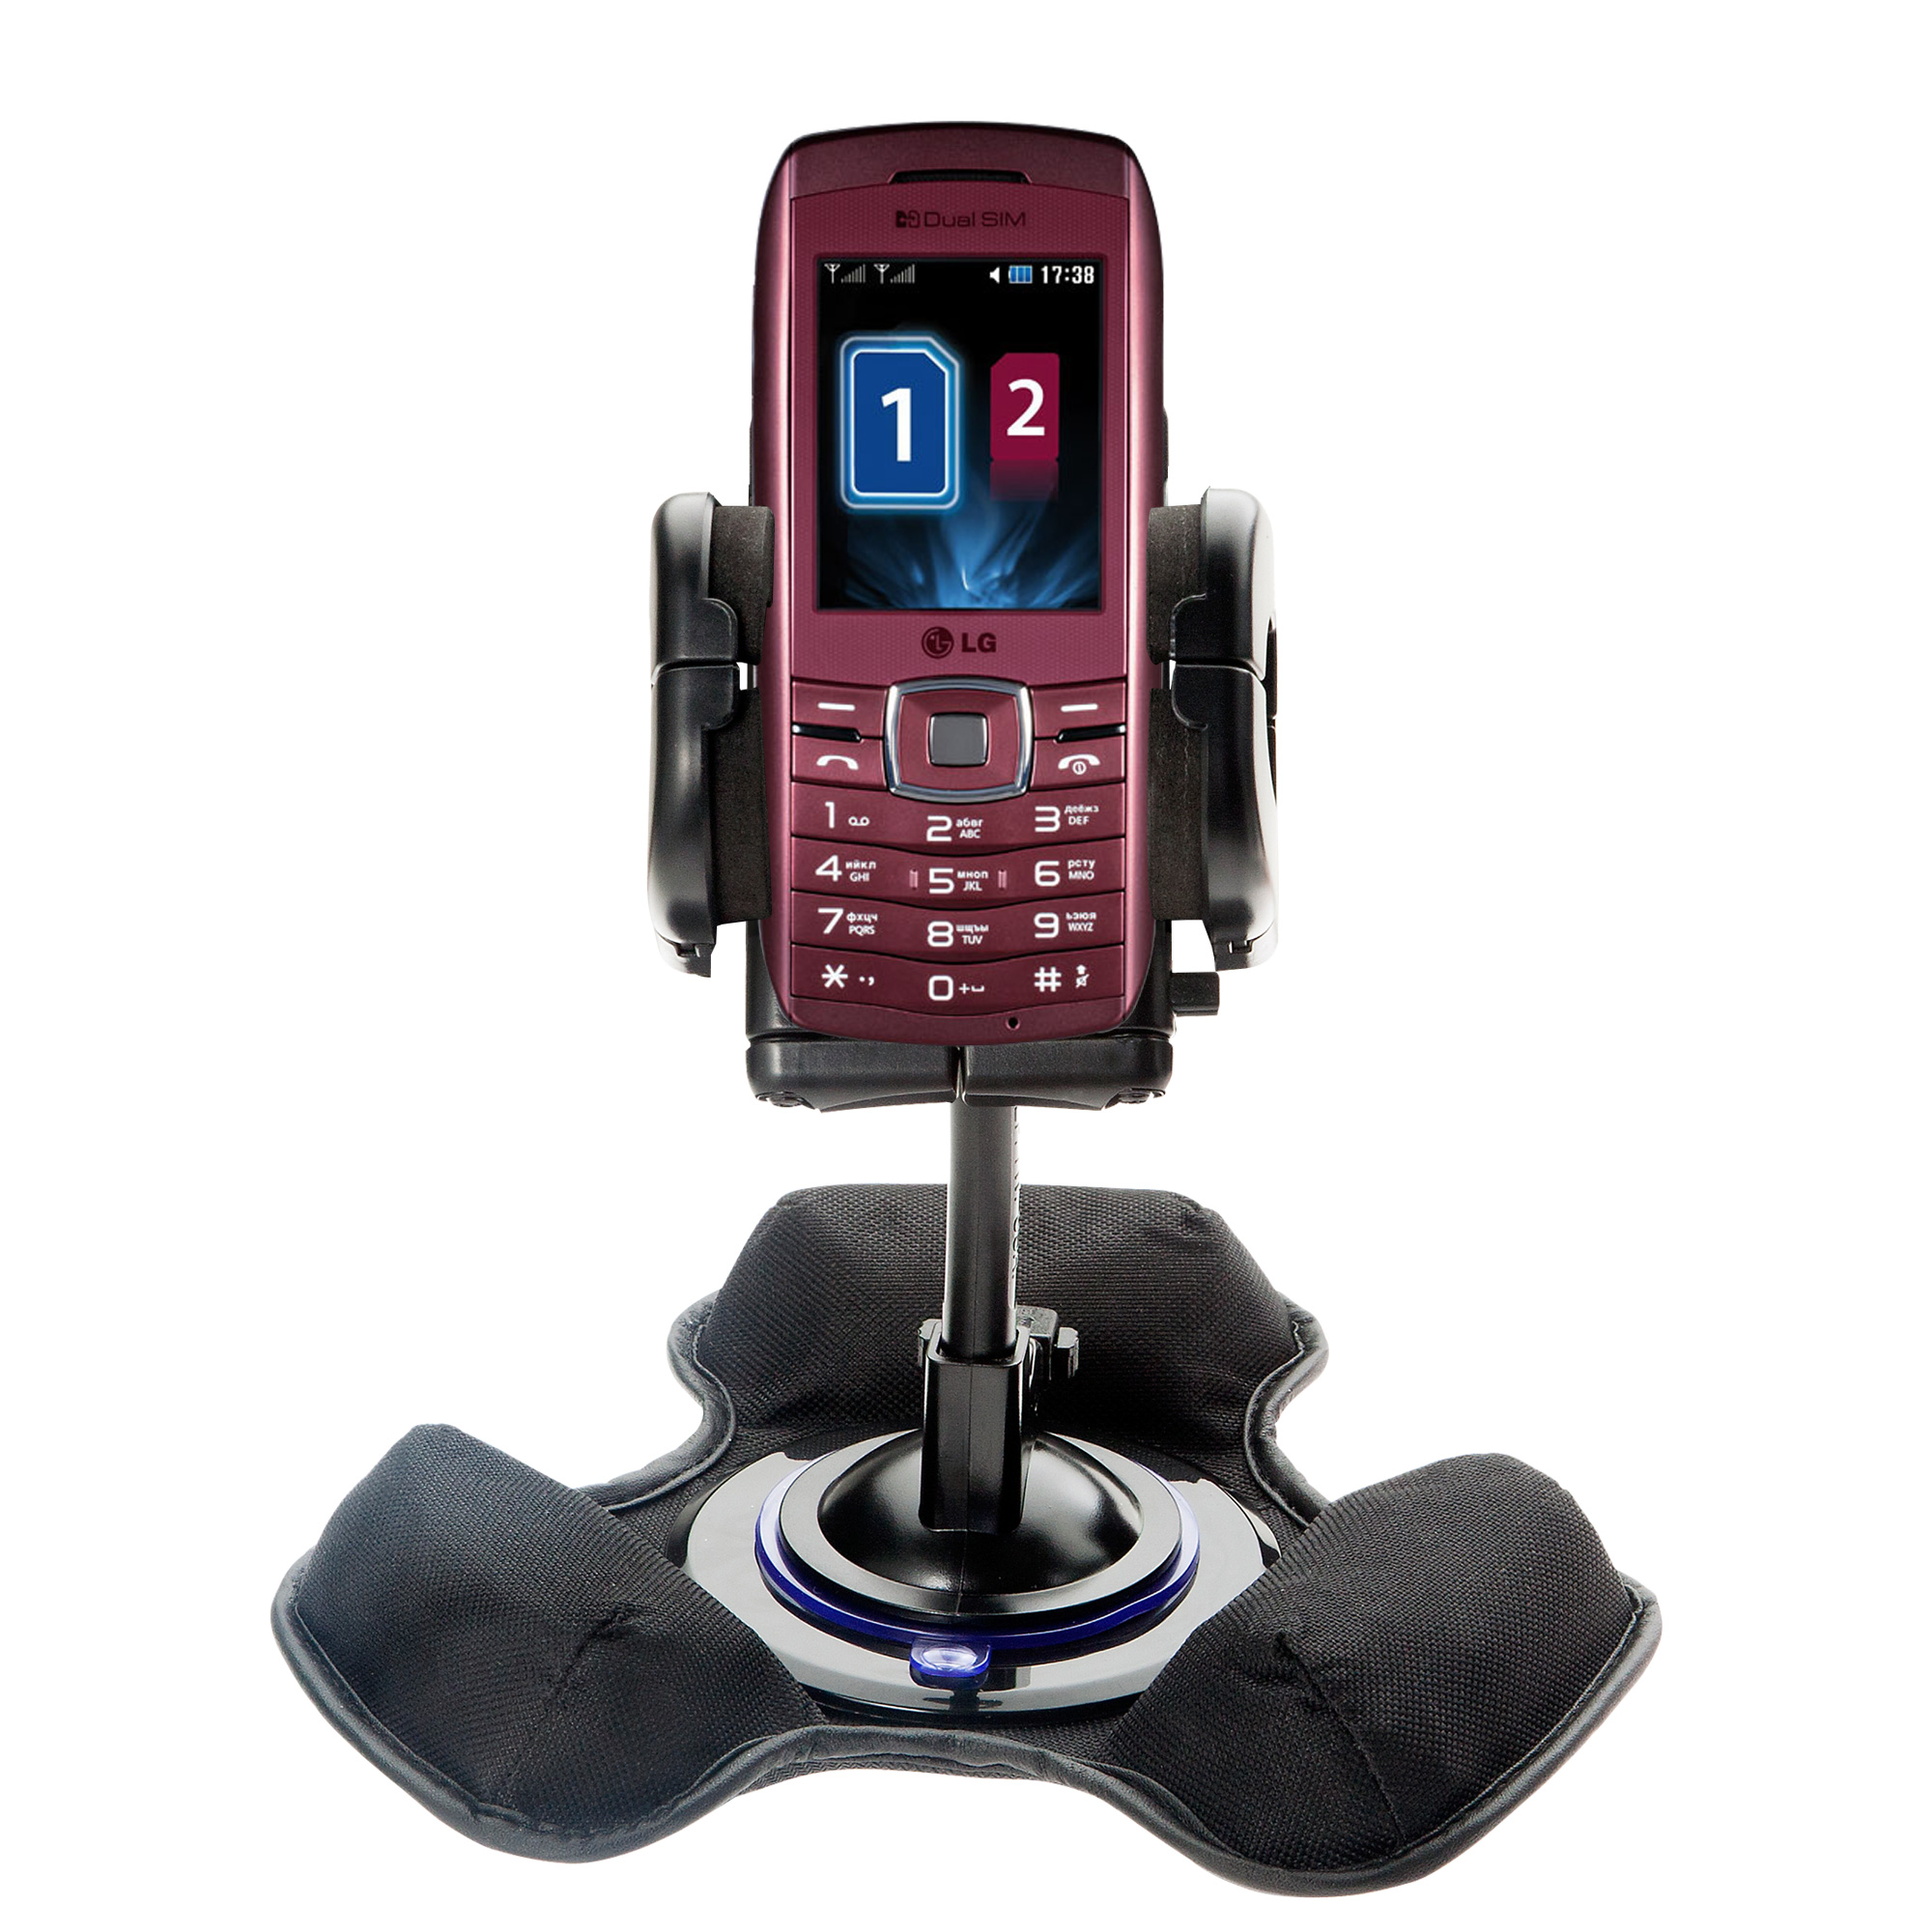 Dash and Windshield Holder compatible with the LG GX300